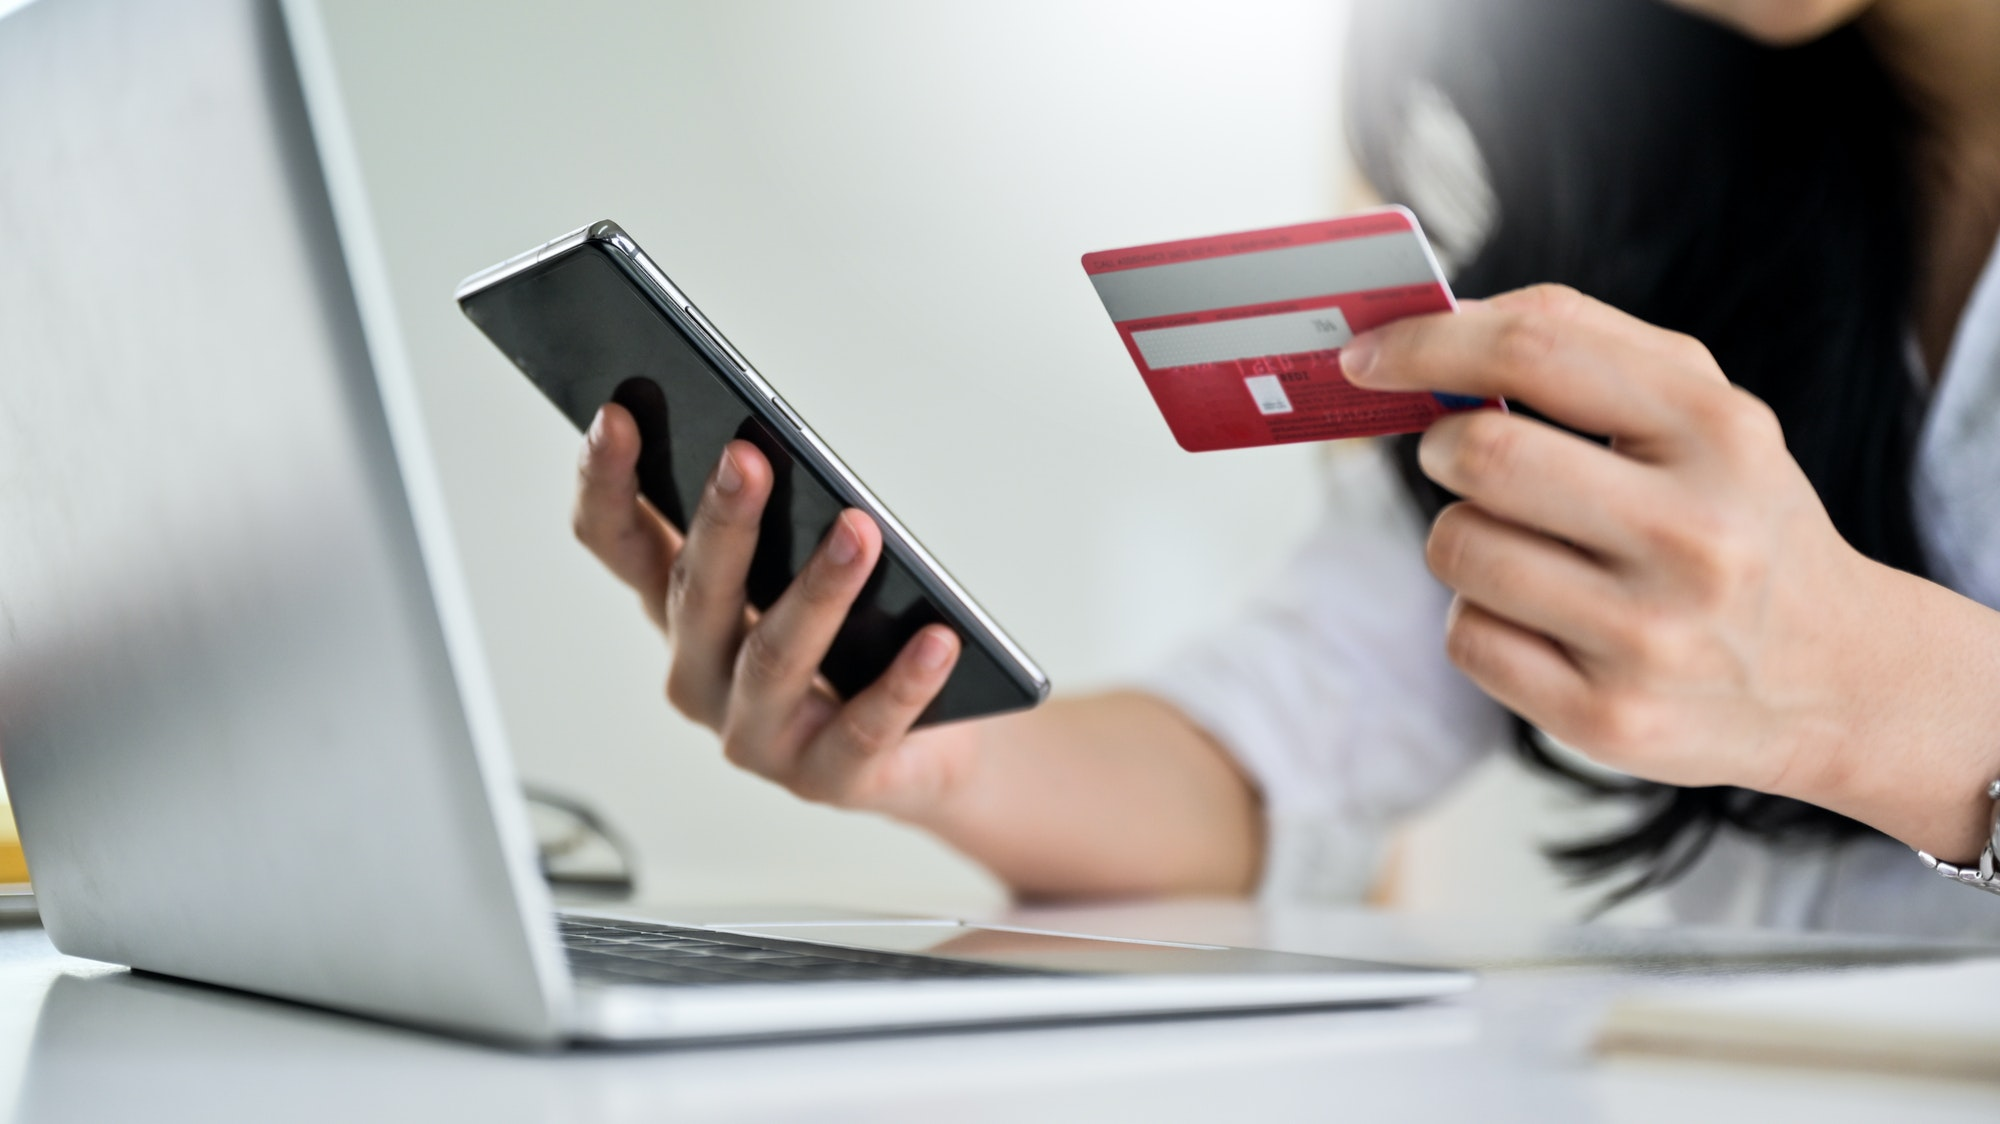 Young woman holding credit card and smartphone with laptop, Credit card payment.